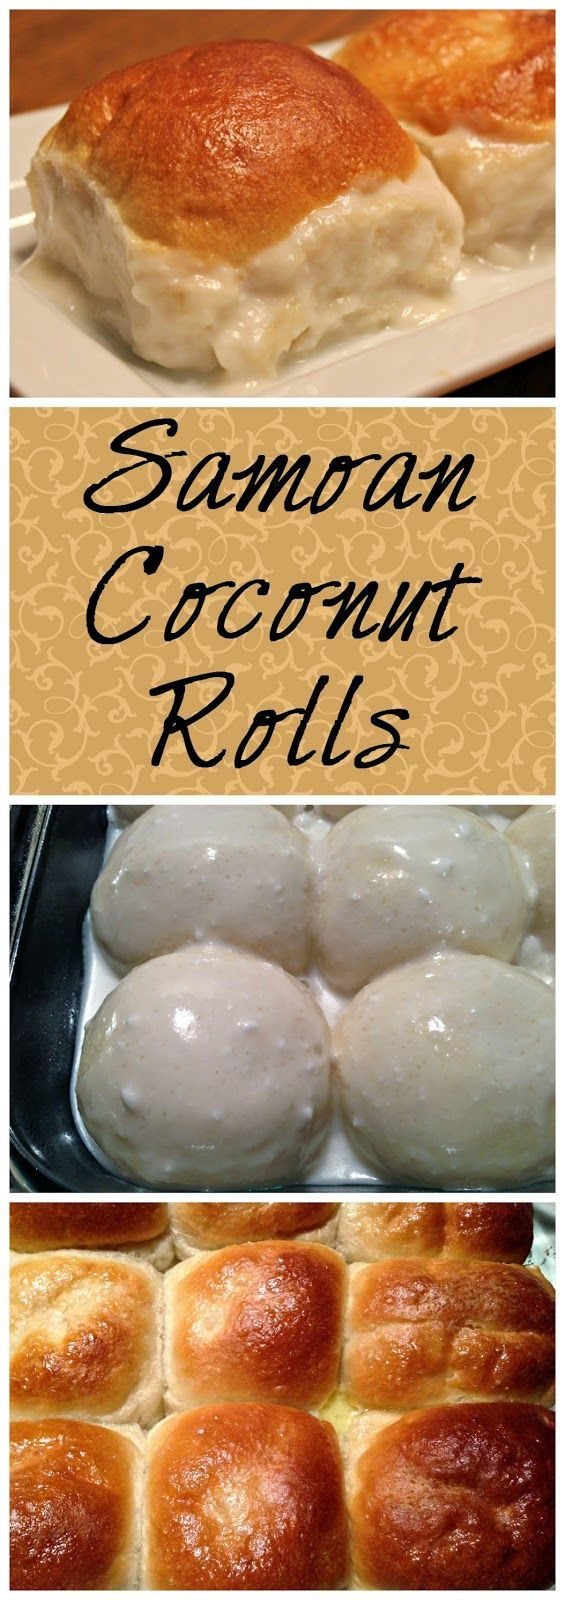 Samoan Coconut Rolls (Pani Popo)   These sweet coconut rolls are absolutely delicious! Perfect for Easter too.